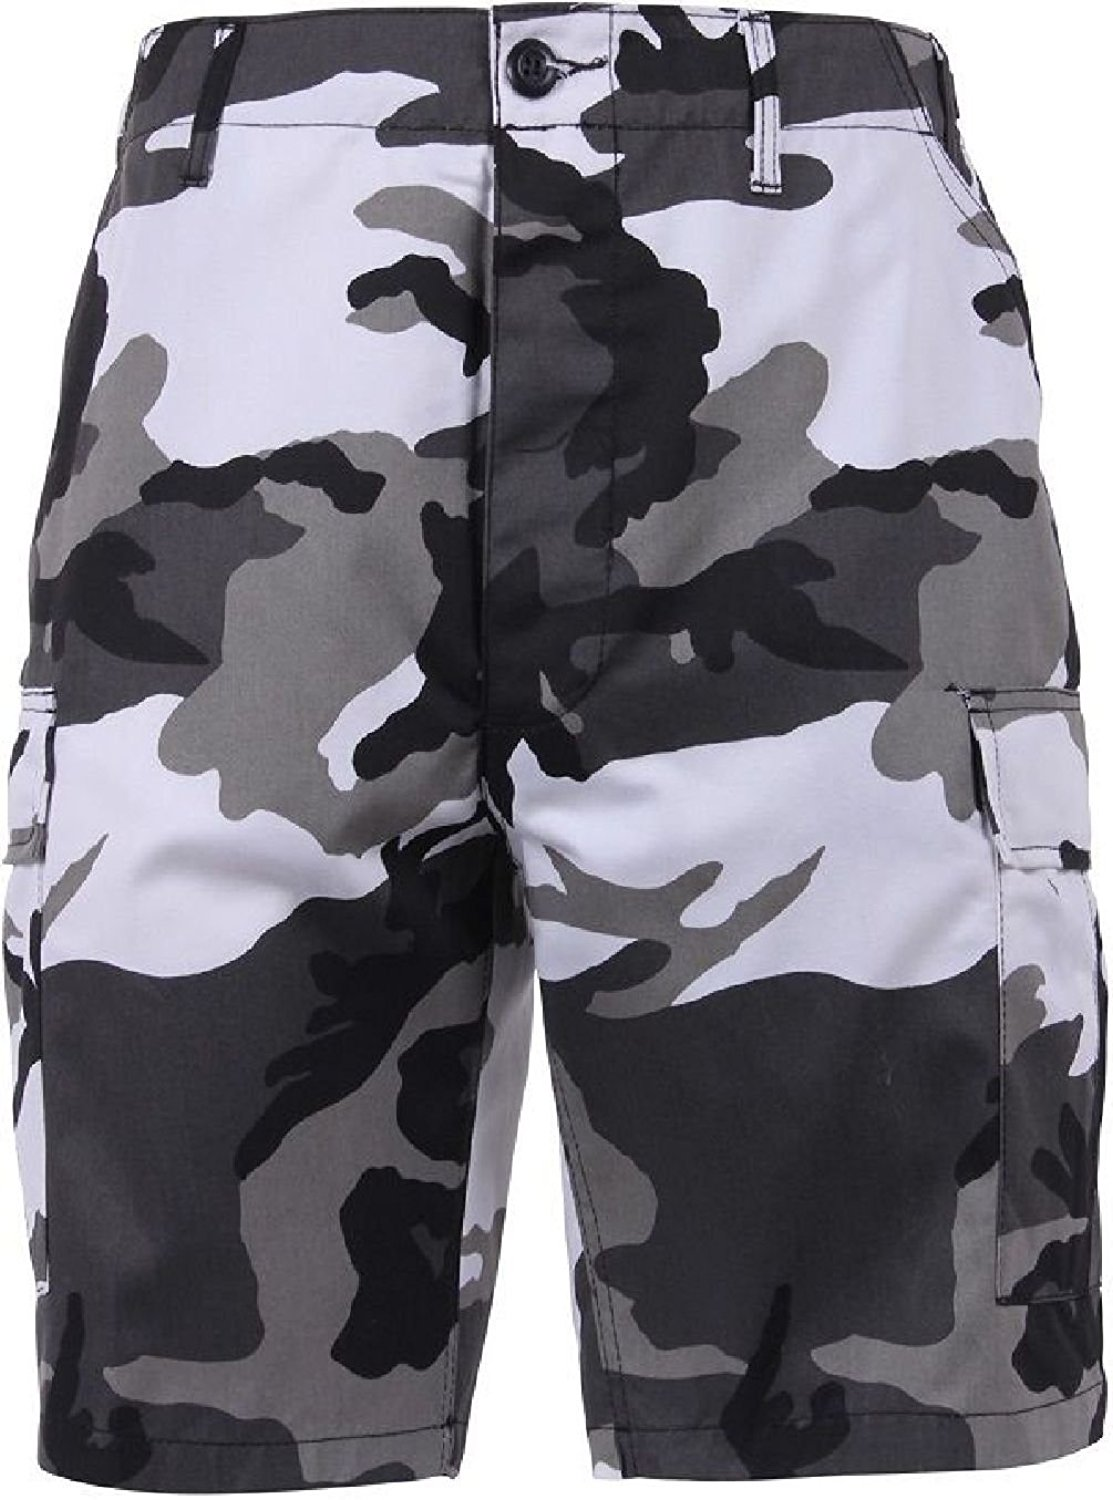 cff35b7addb Get Quotations · Bellawjace Clothing City Camo Camouflage Military BDU  Combat Cargo Camo Army Shorts